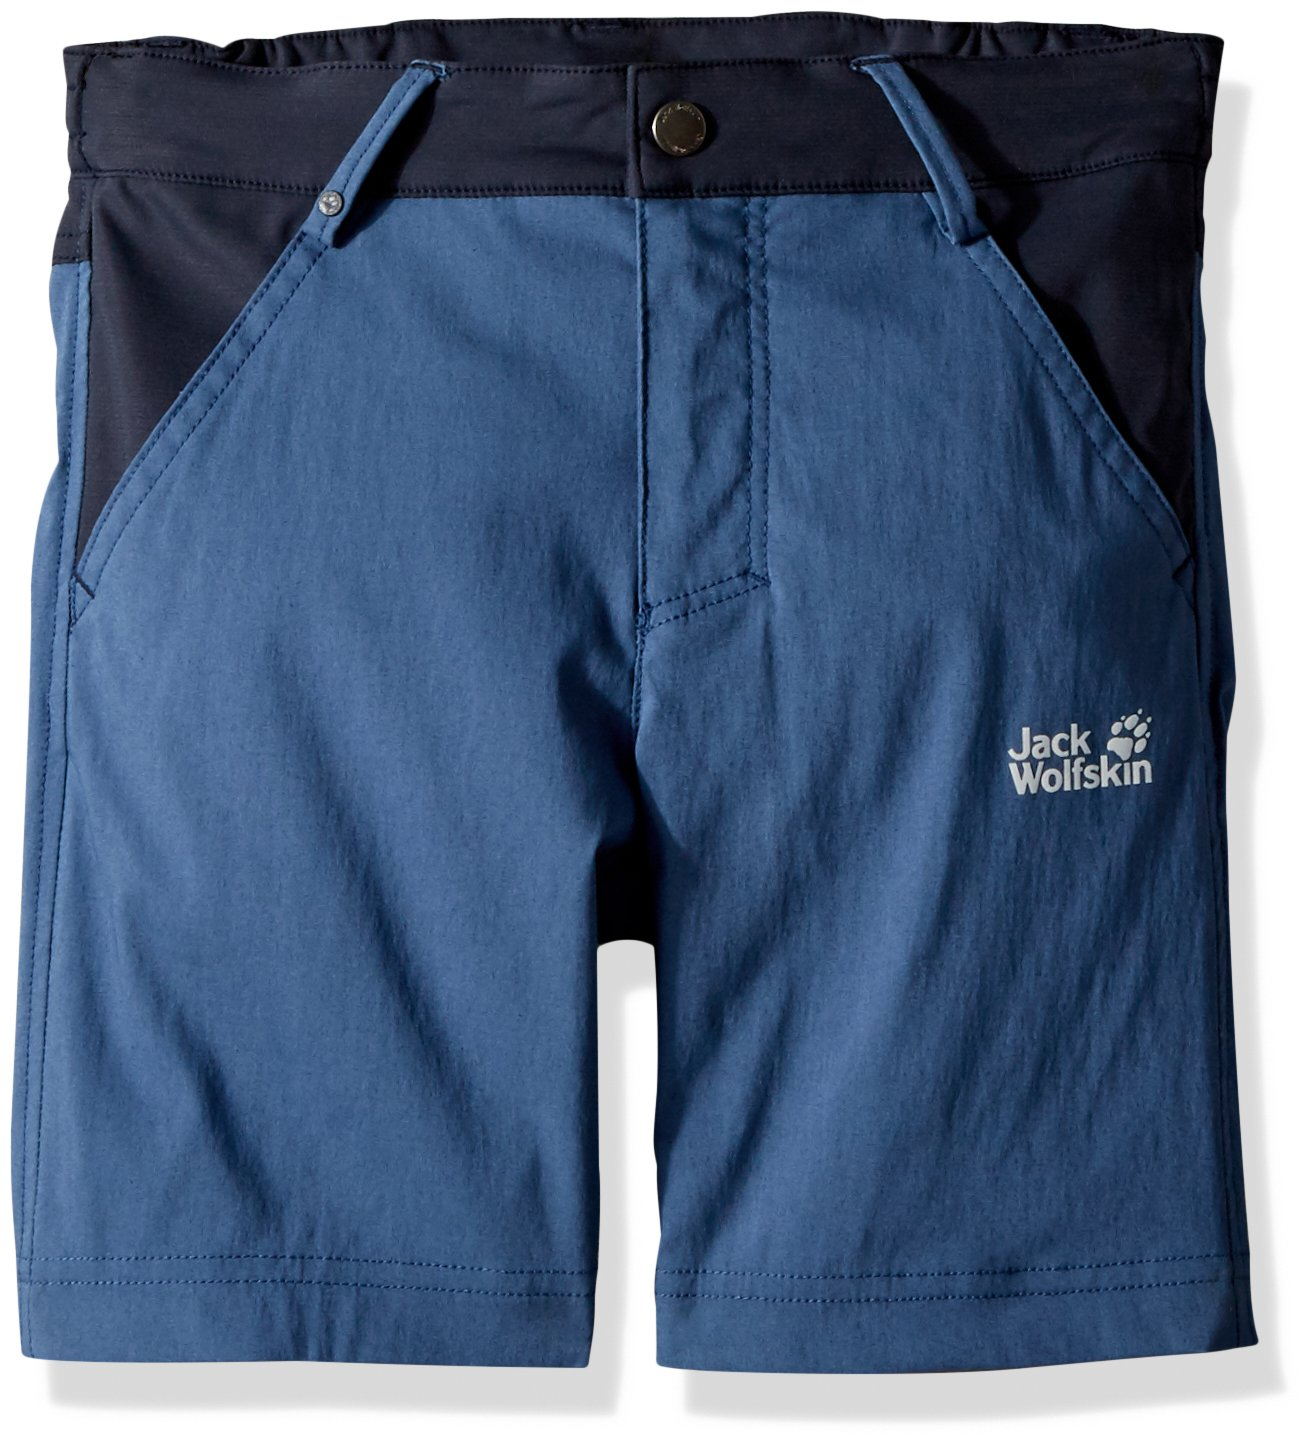 Jack Wolfskin Dillon Flex Shorts, 92 (18-24 Months Old), Ocean Wave by Jack Wolfskin